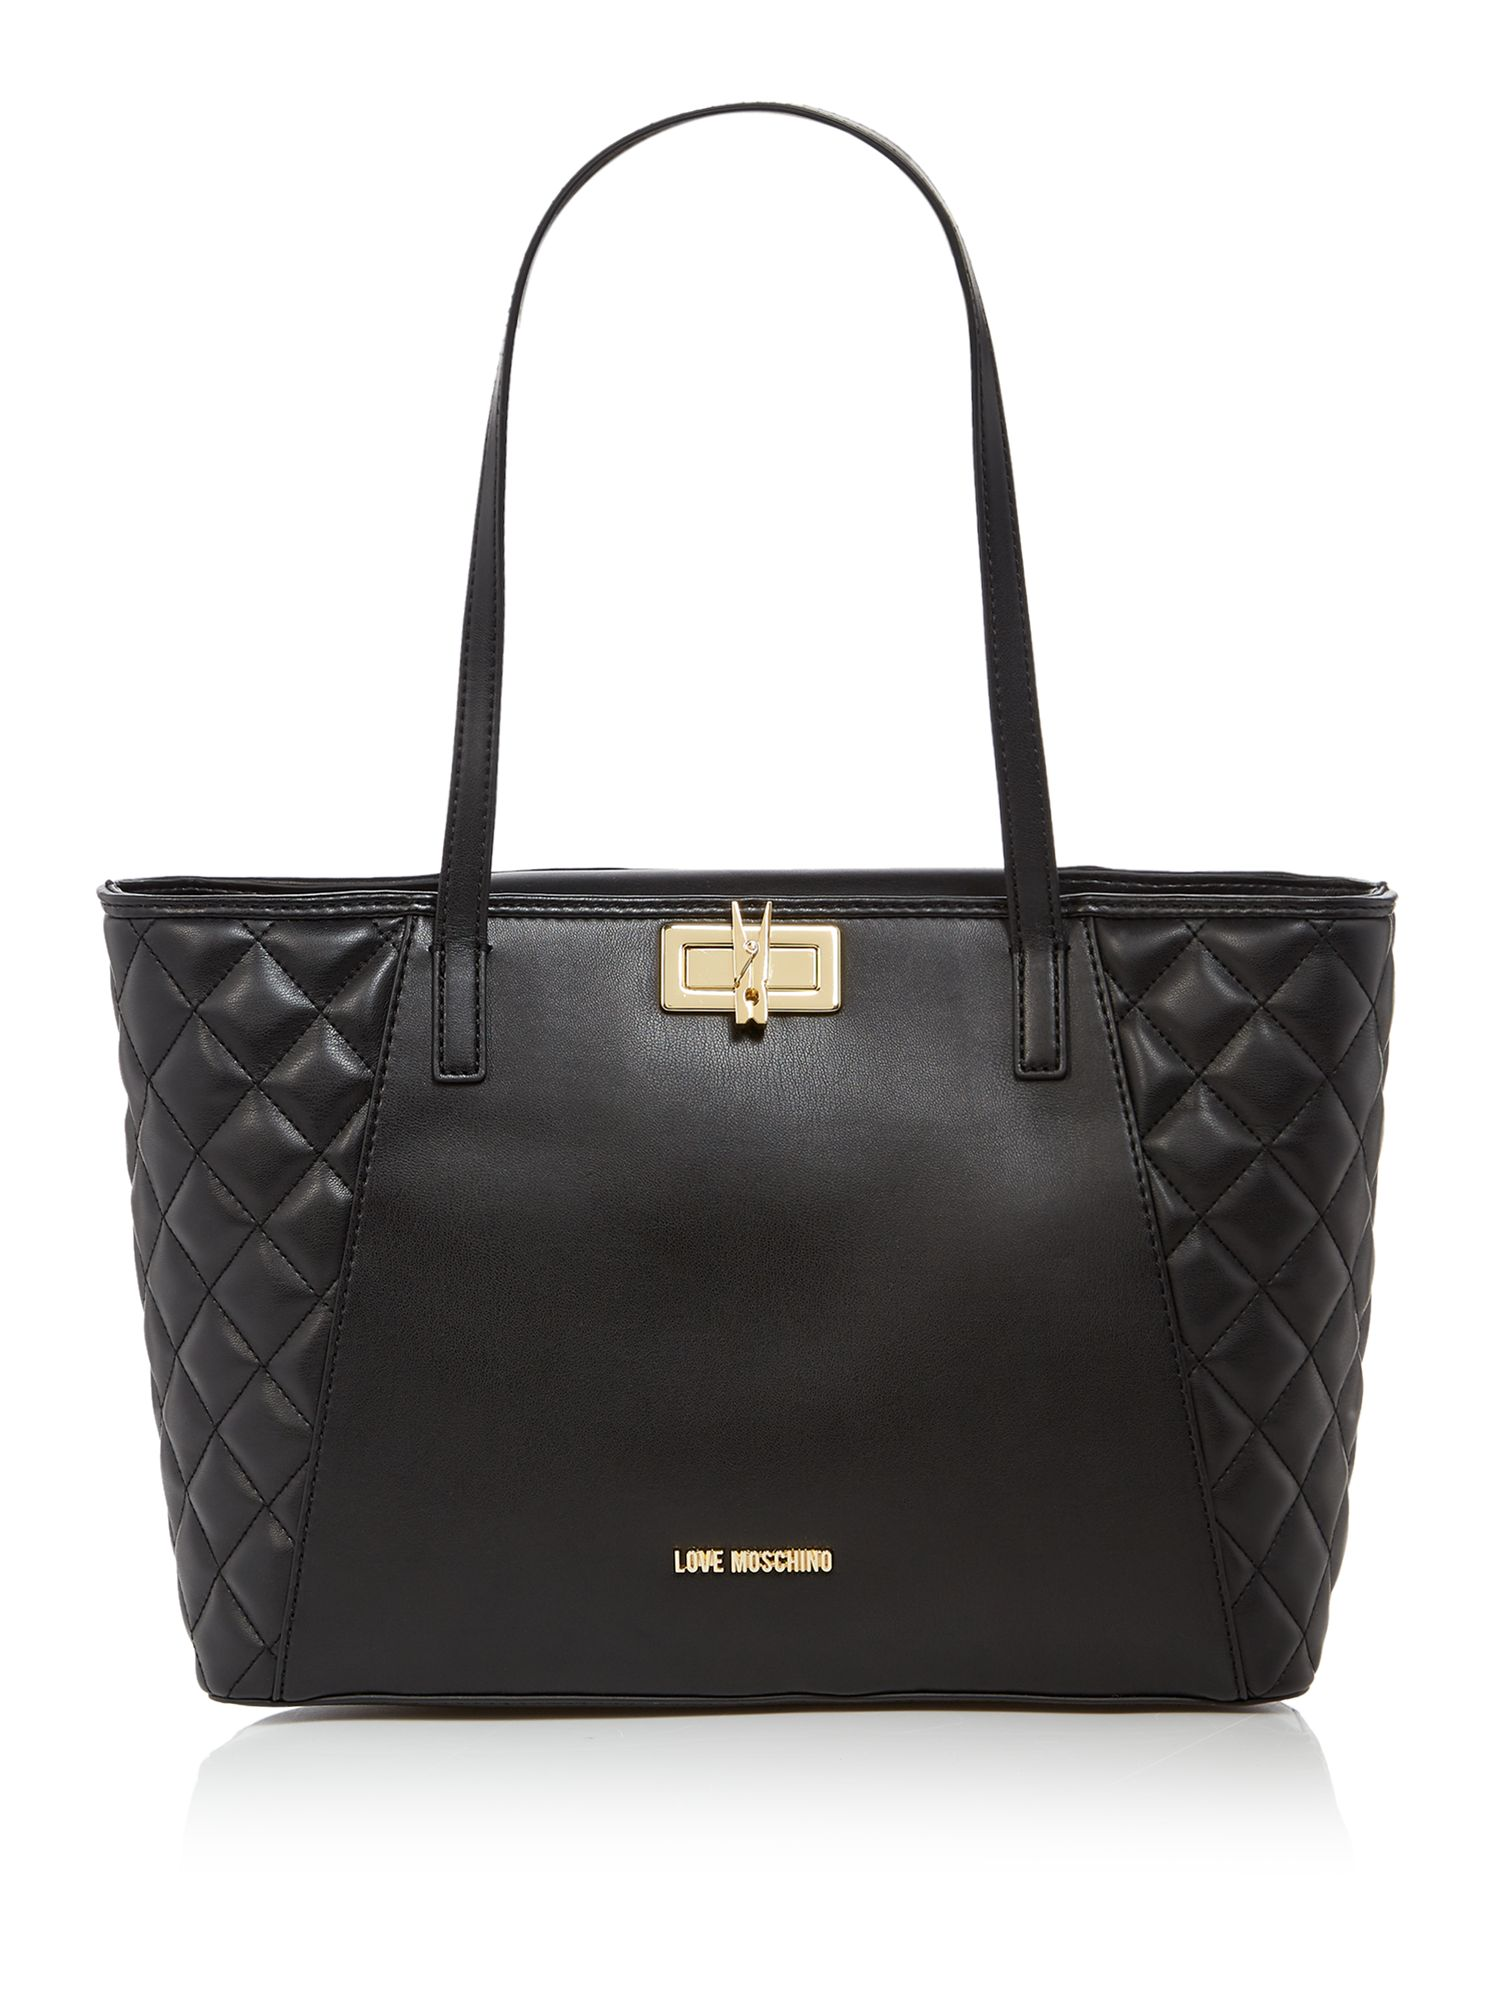 Love Moschino Clothes peg large tote bag, Black